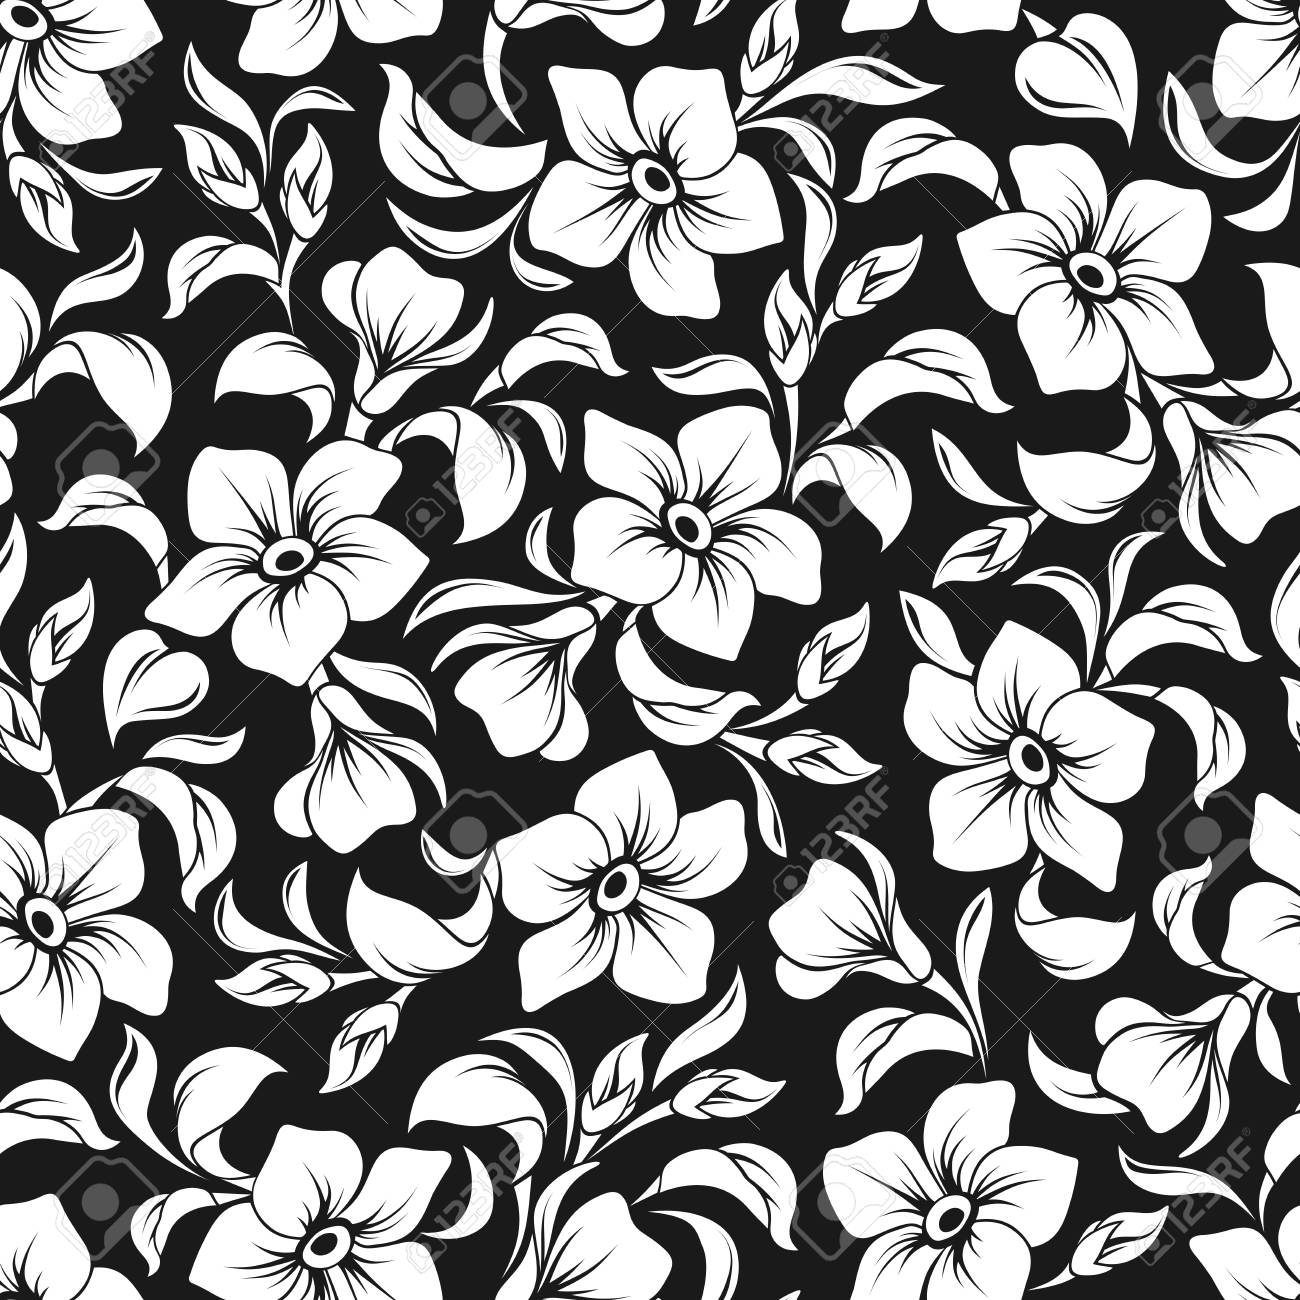 Vector Seamless Floral Pattern With White Flowers And Leaves